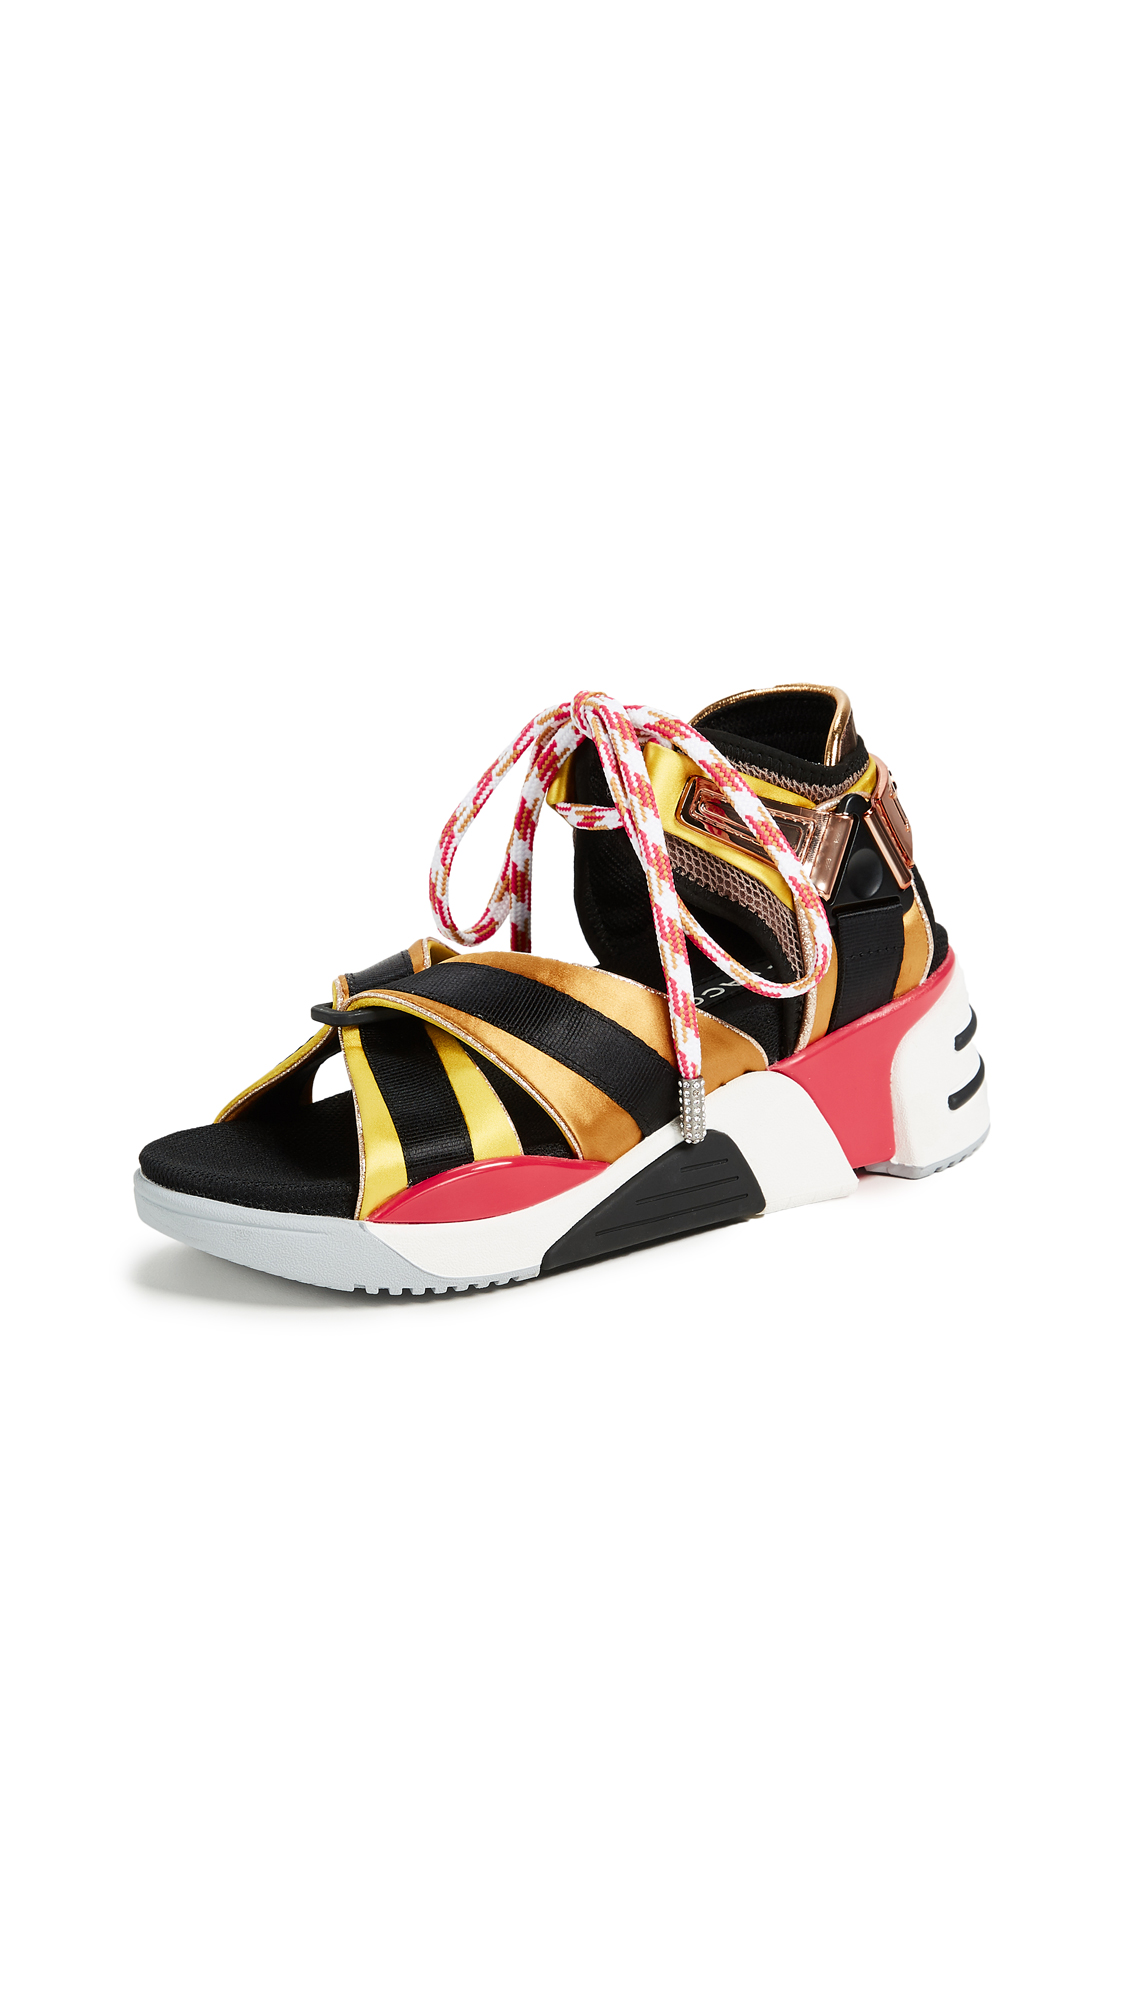 Marc Jacobs Somewhere Sport Sandals - Yellow Multi